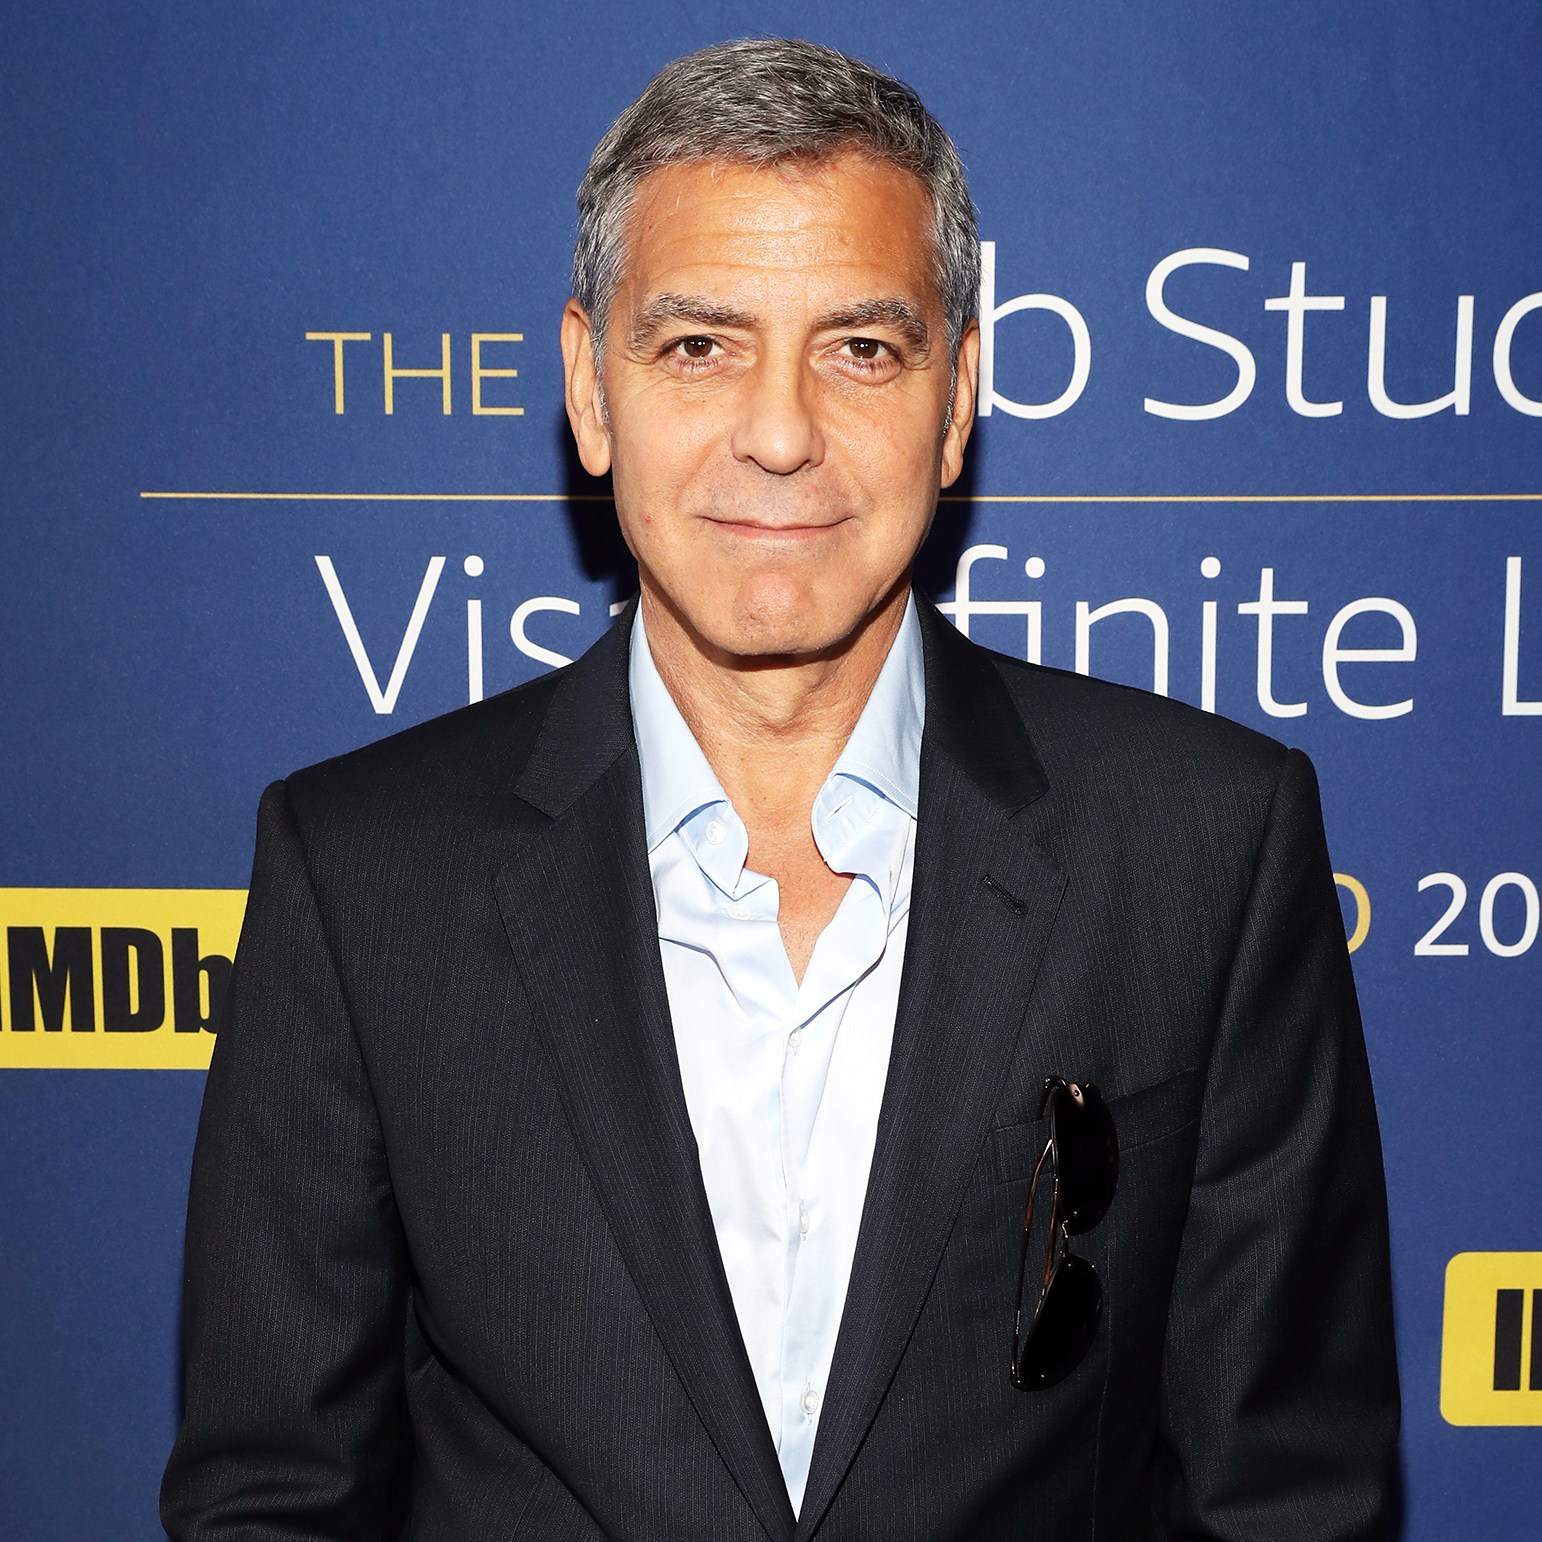 George Clooney Praises Parkland Students in Open Letter